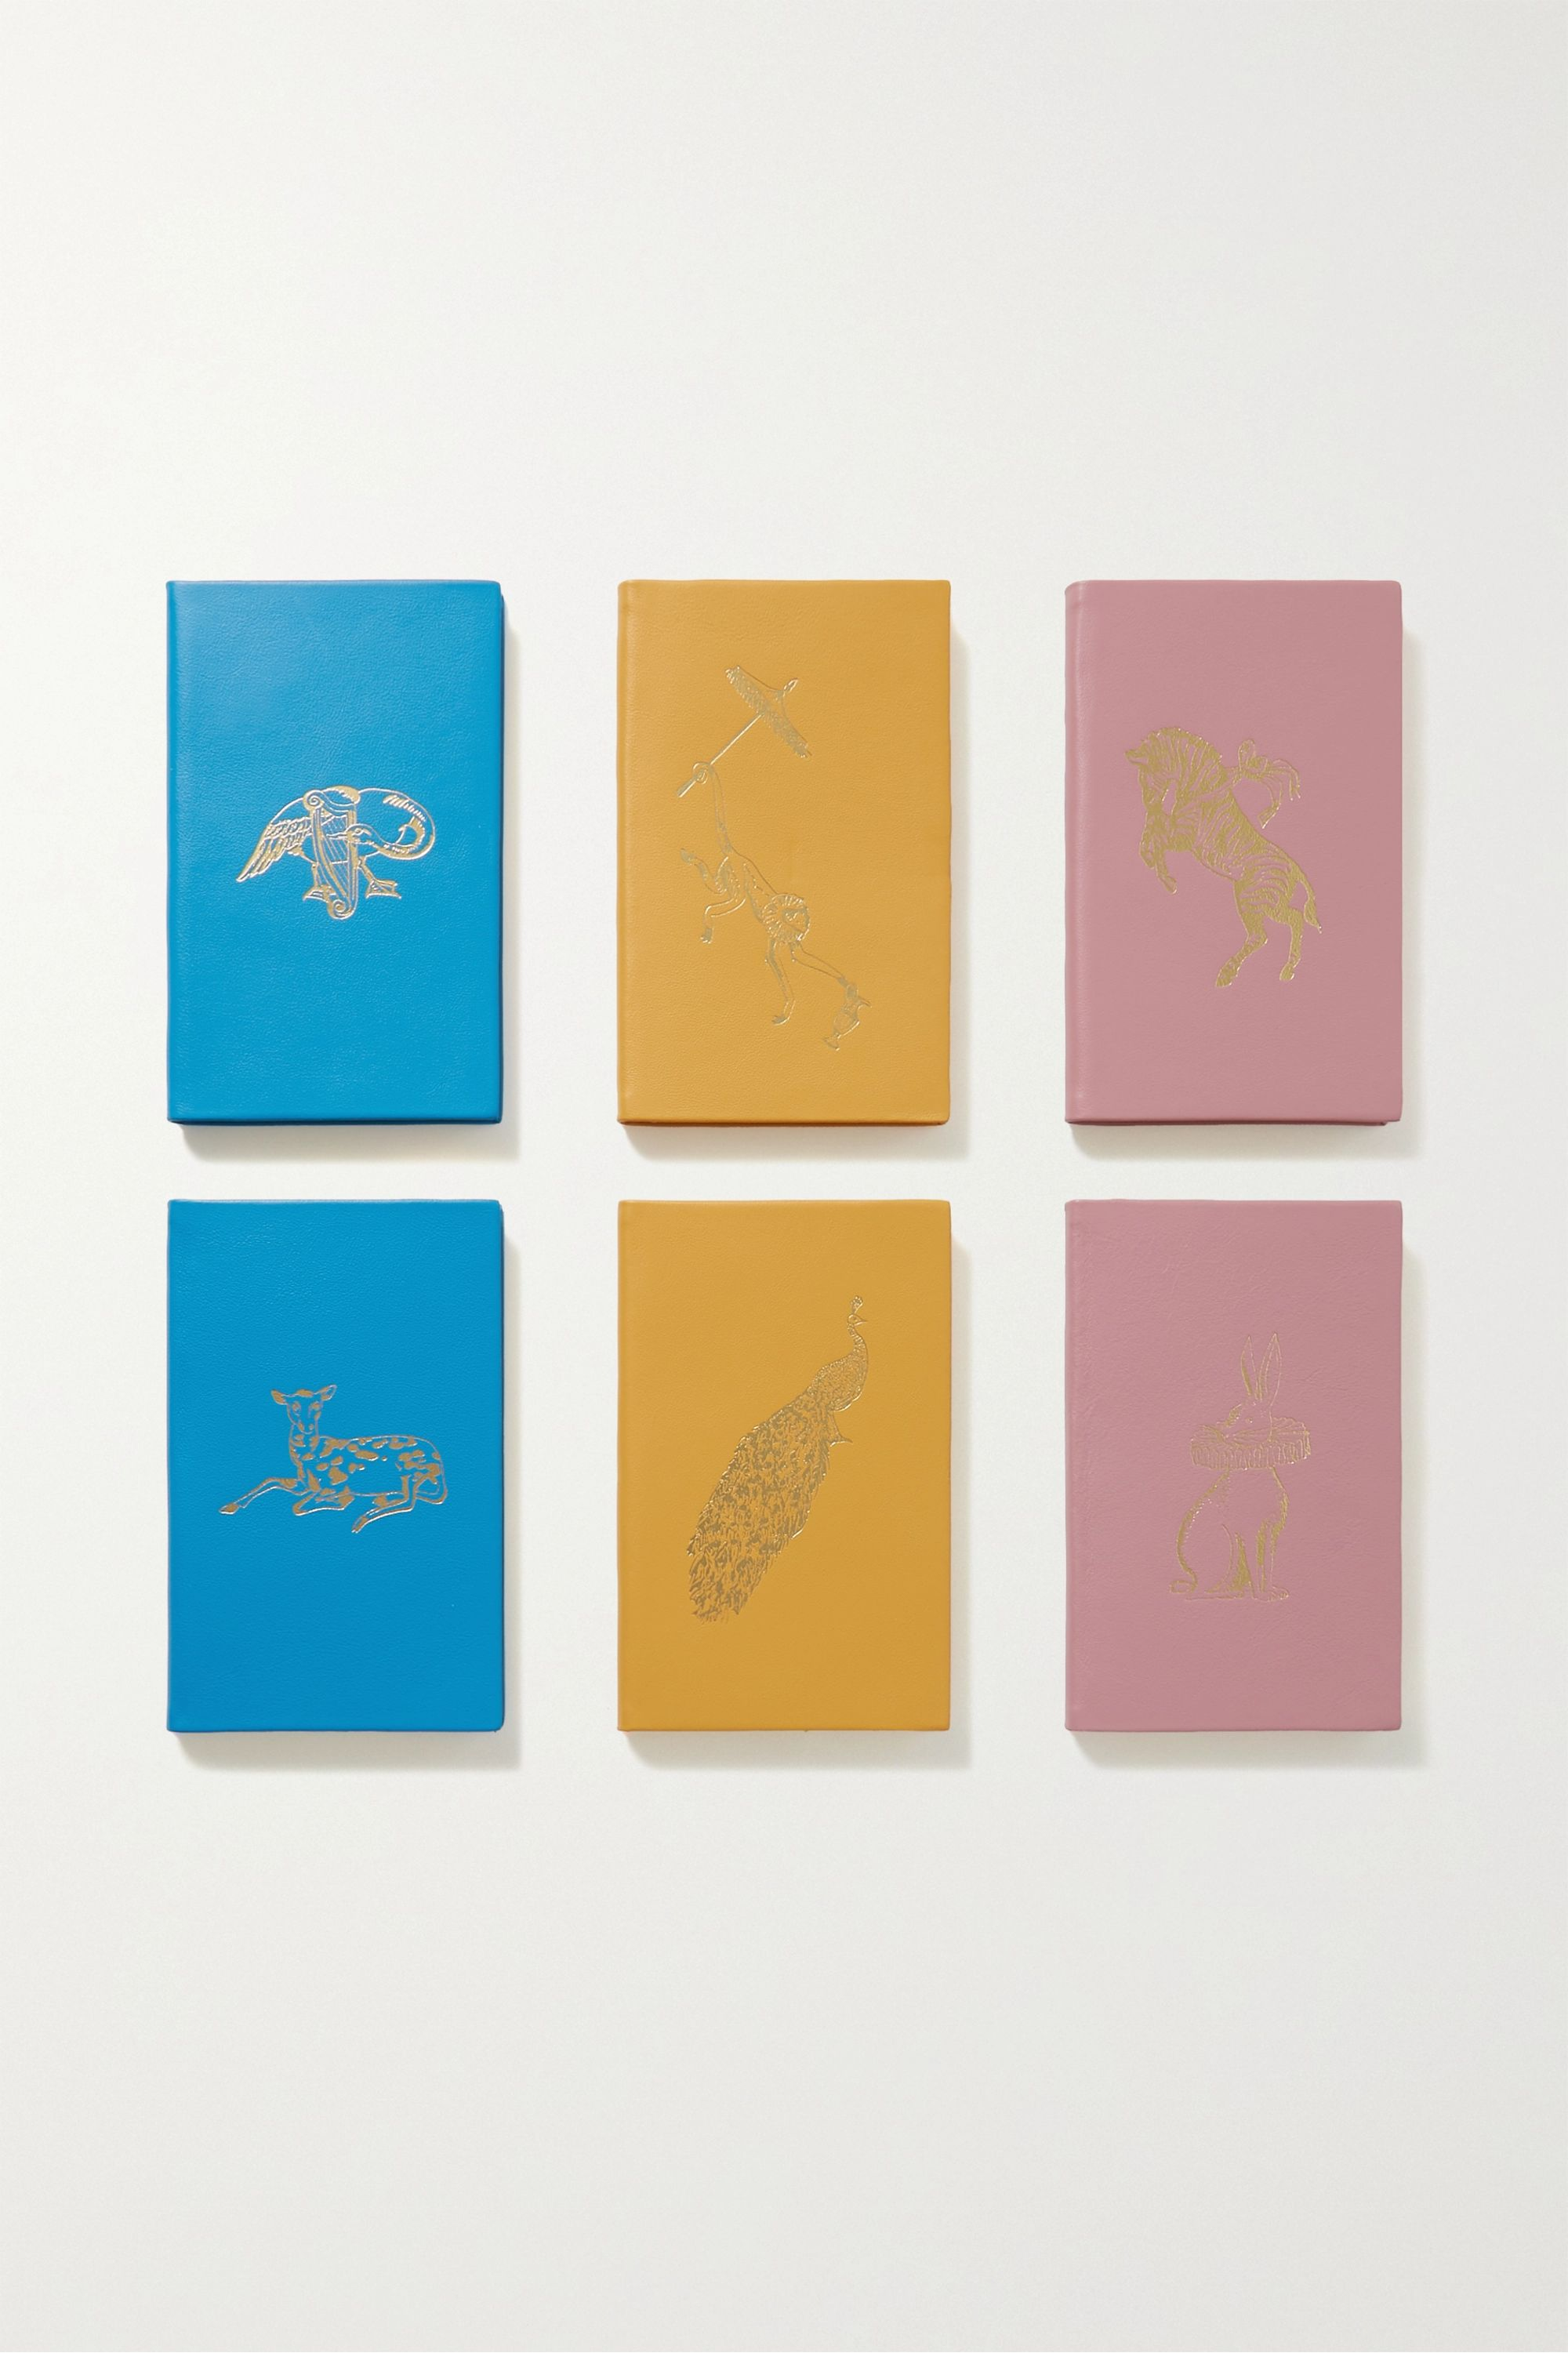 Smythson Managerie set of 6 textured-leather notebooks